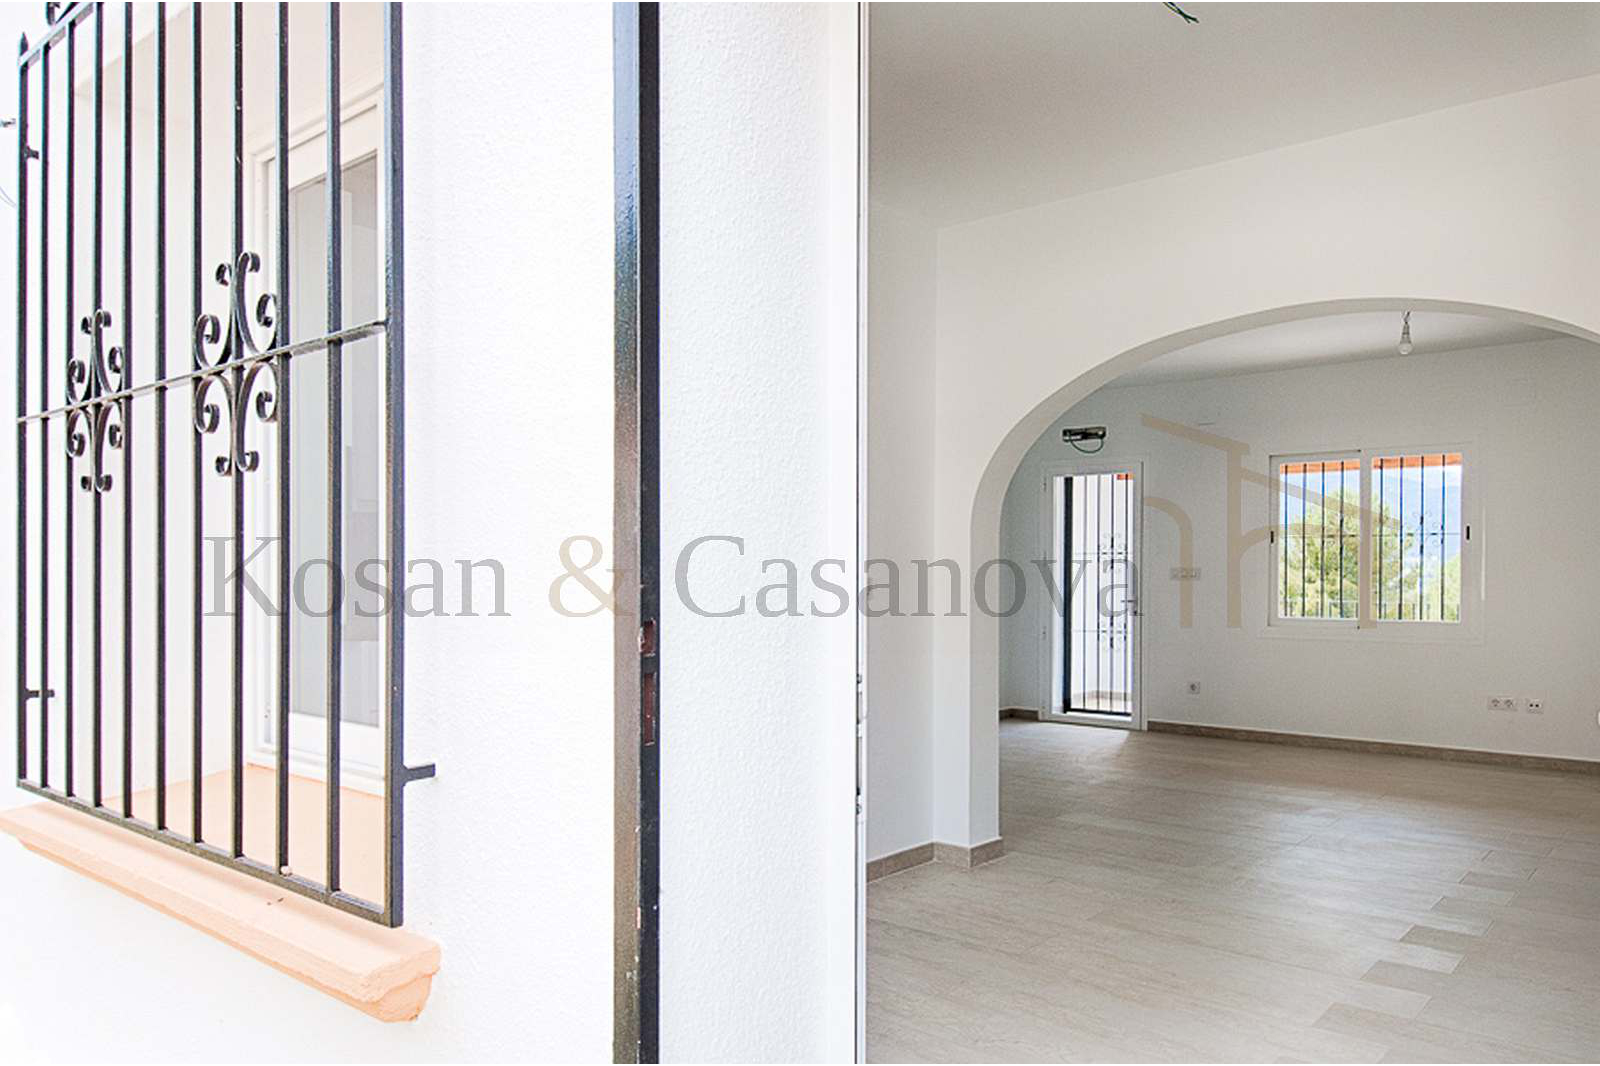 Murla- Detached villas, ready to move into on the Costa Blanca pic 8